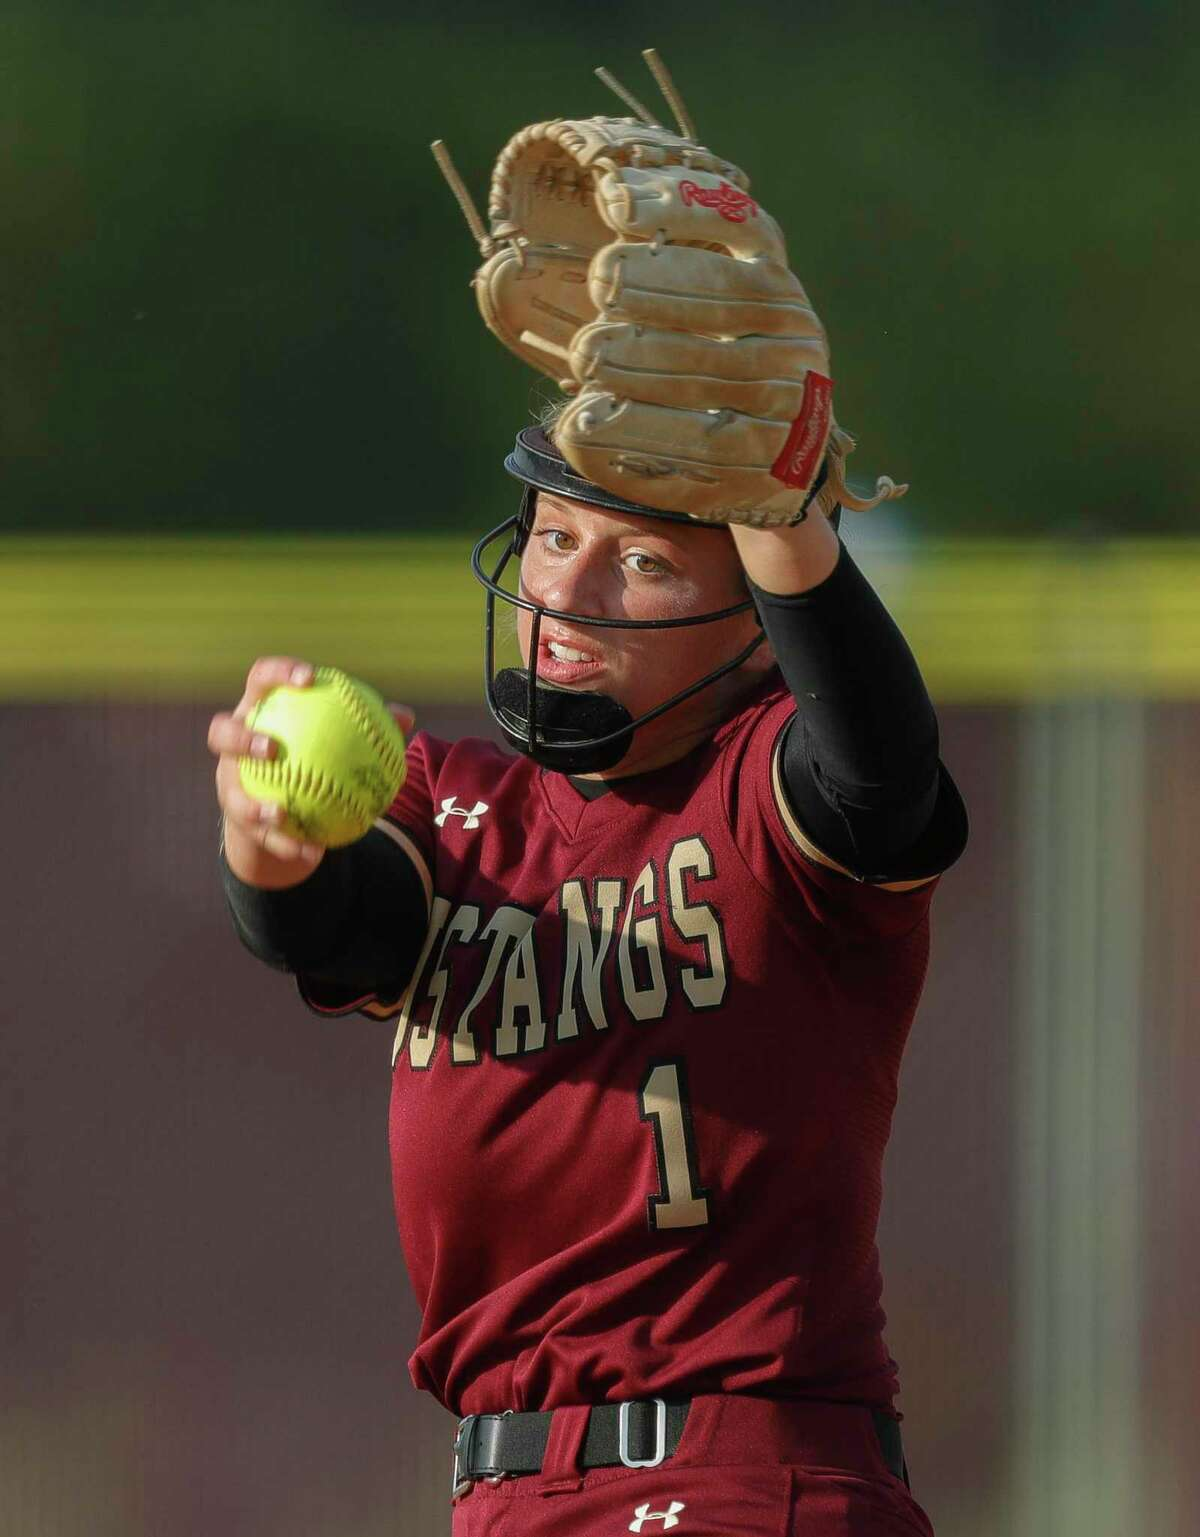 Magnolia West senior Toni Tamborello was named District 19-5A Pitcher of the Year.